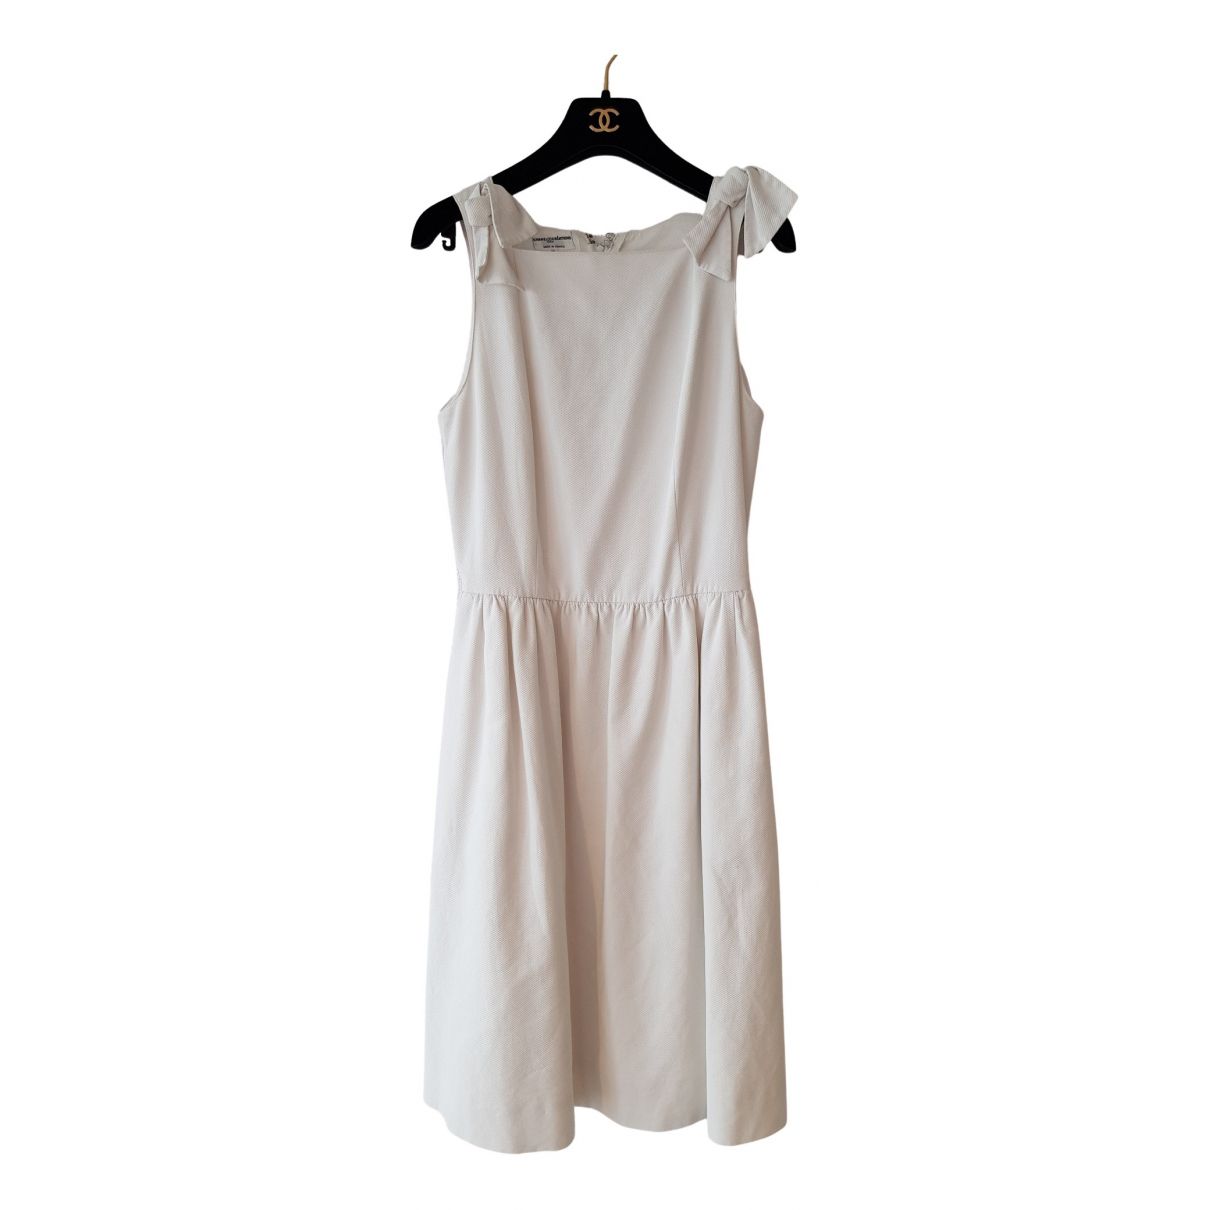 Chanel N White Cotton dress for Women 10 US